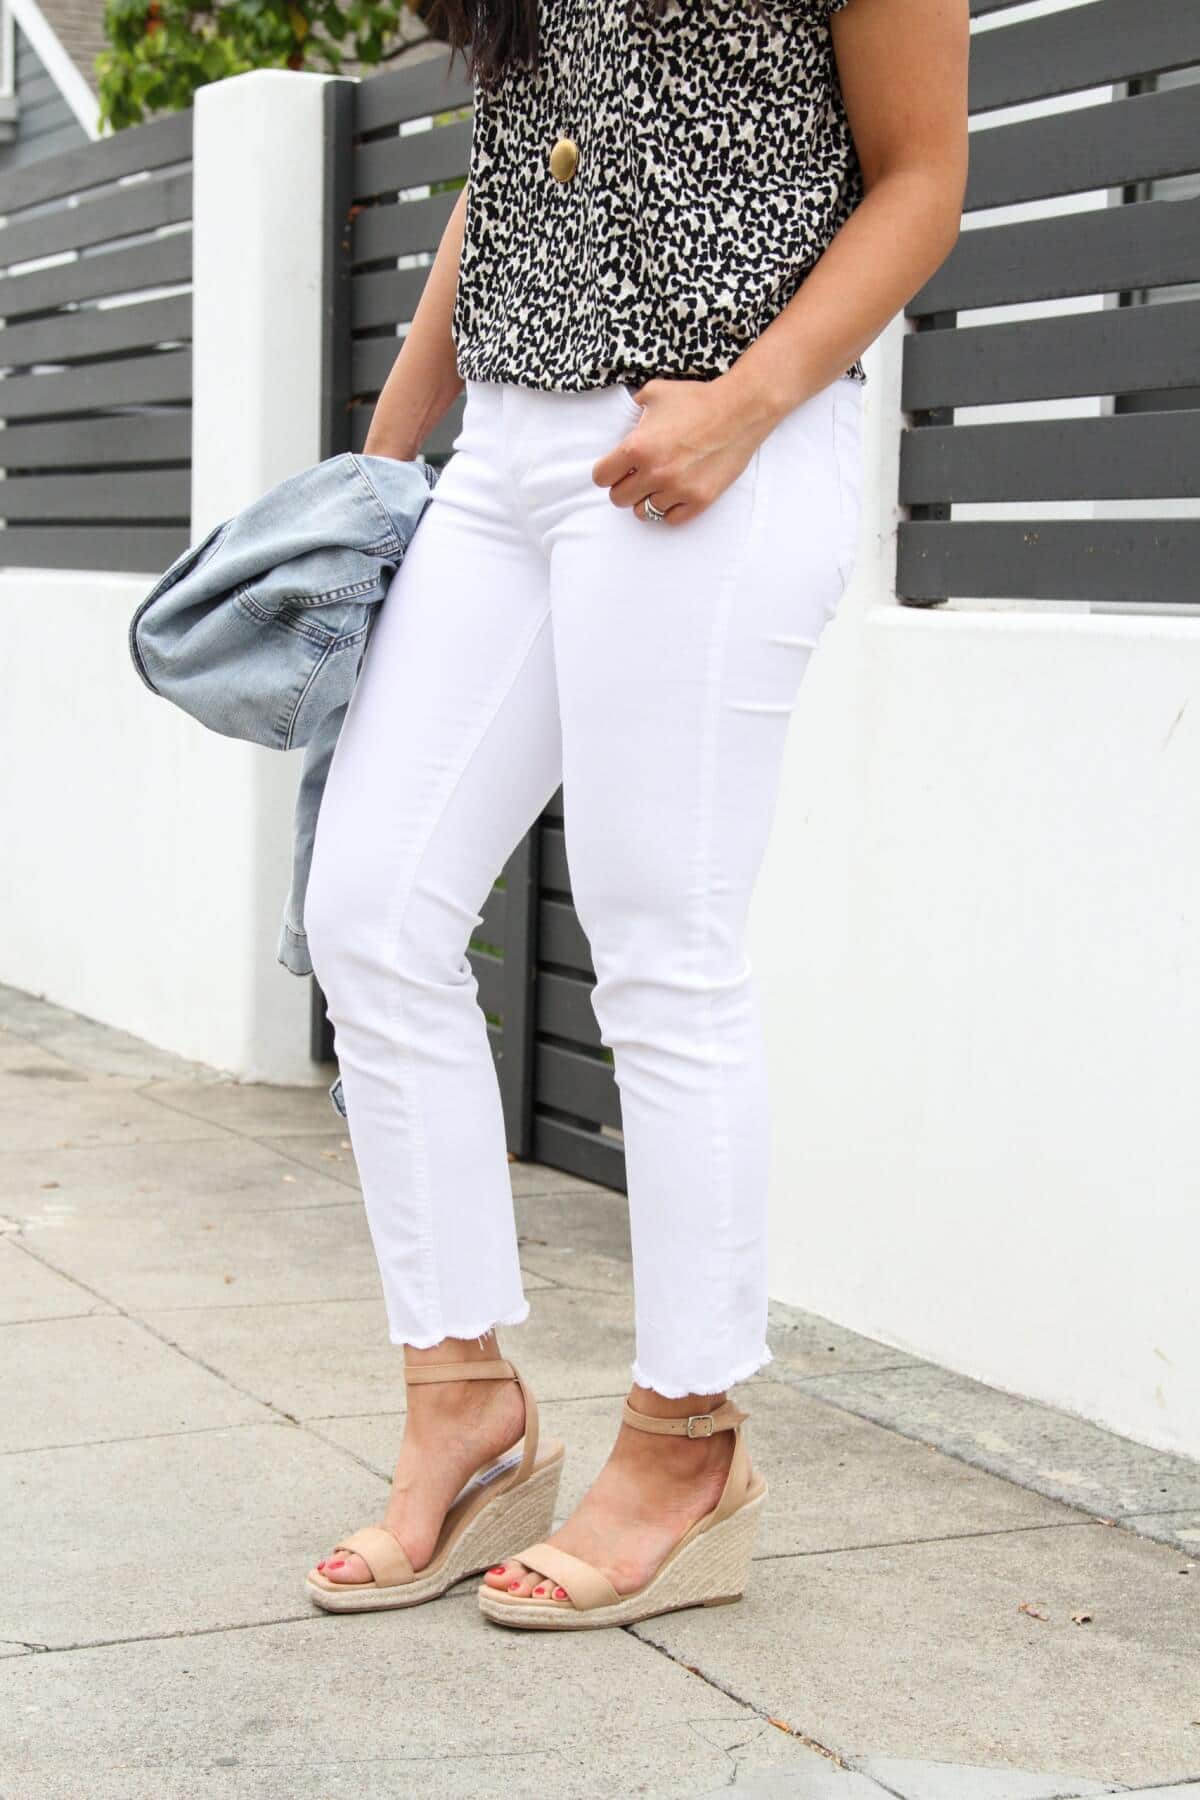 Summer Shoes Casual Outfit: black white beige spotted tee + white jeans + denim jacket + nude espadrille wedges + pendant necklace